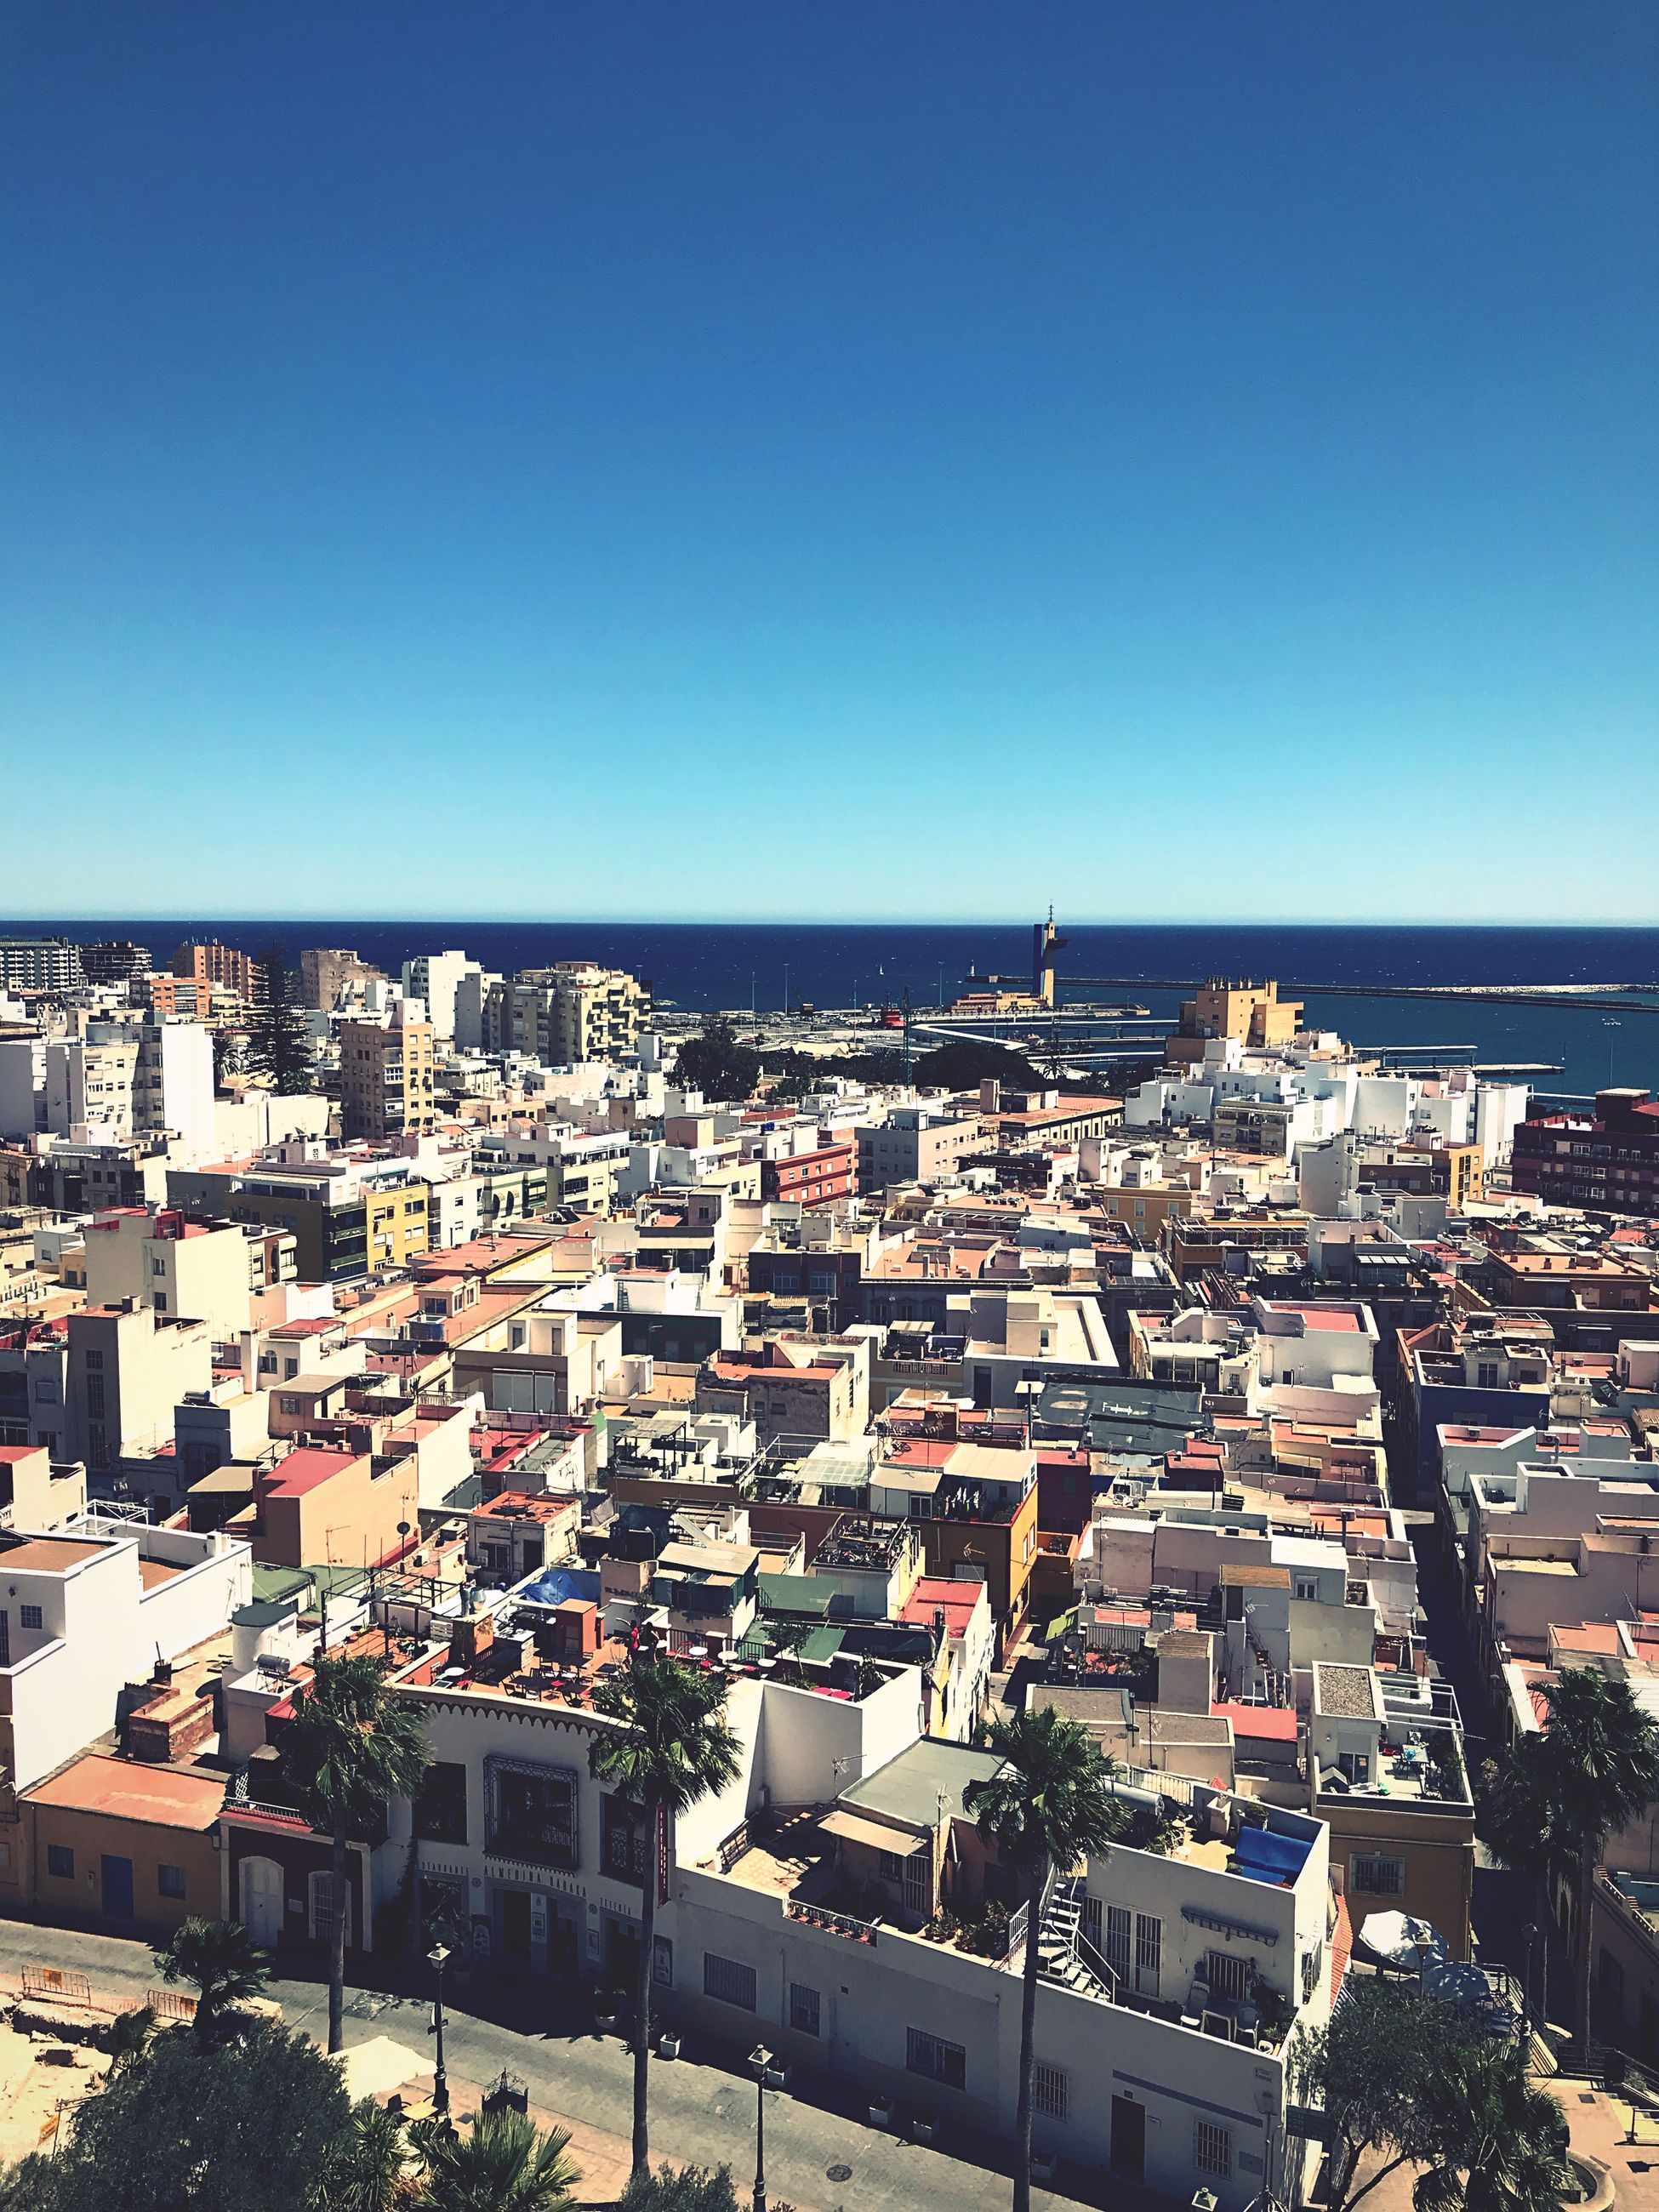 building exterior, architecture, sky, built structure, city, building, clear sky, residential district, cityscape, copy space, blue, crowd, crowded, nature, high angle view, day, sea, sunlight, horizon, outdoors, horizon over water, townscape, settlement